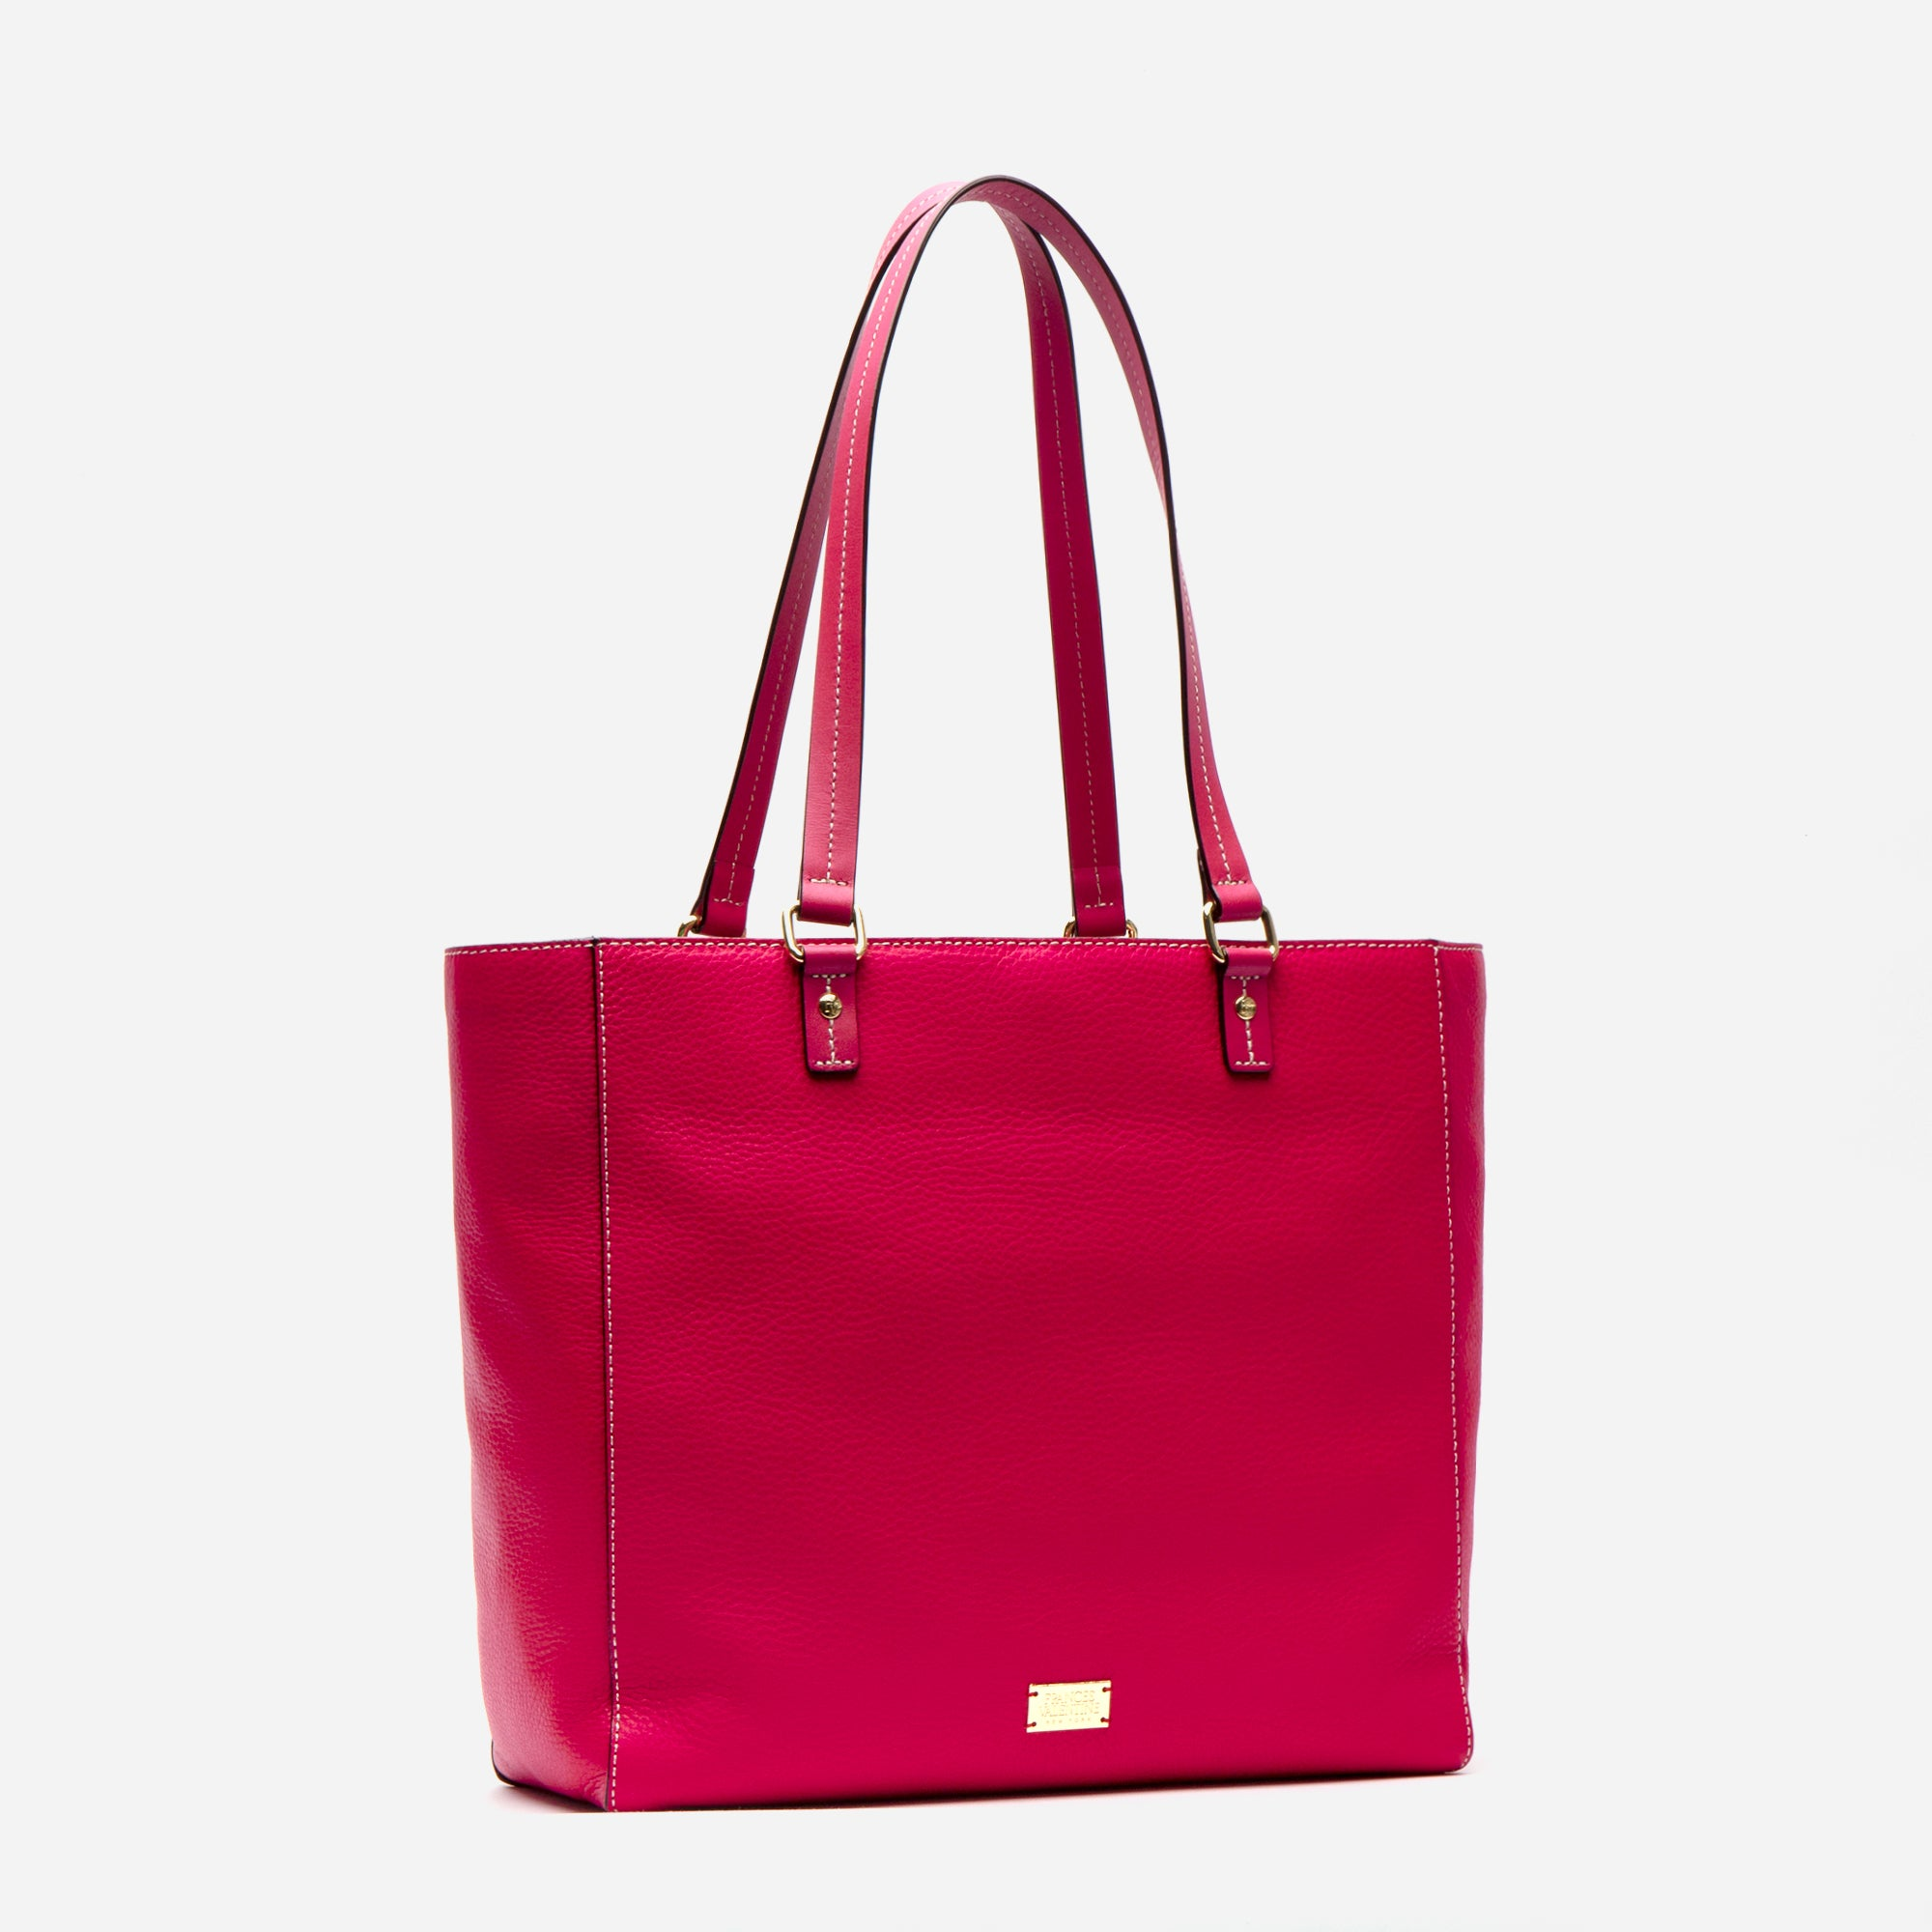 Margie Tote Tumbled Leather Pink